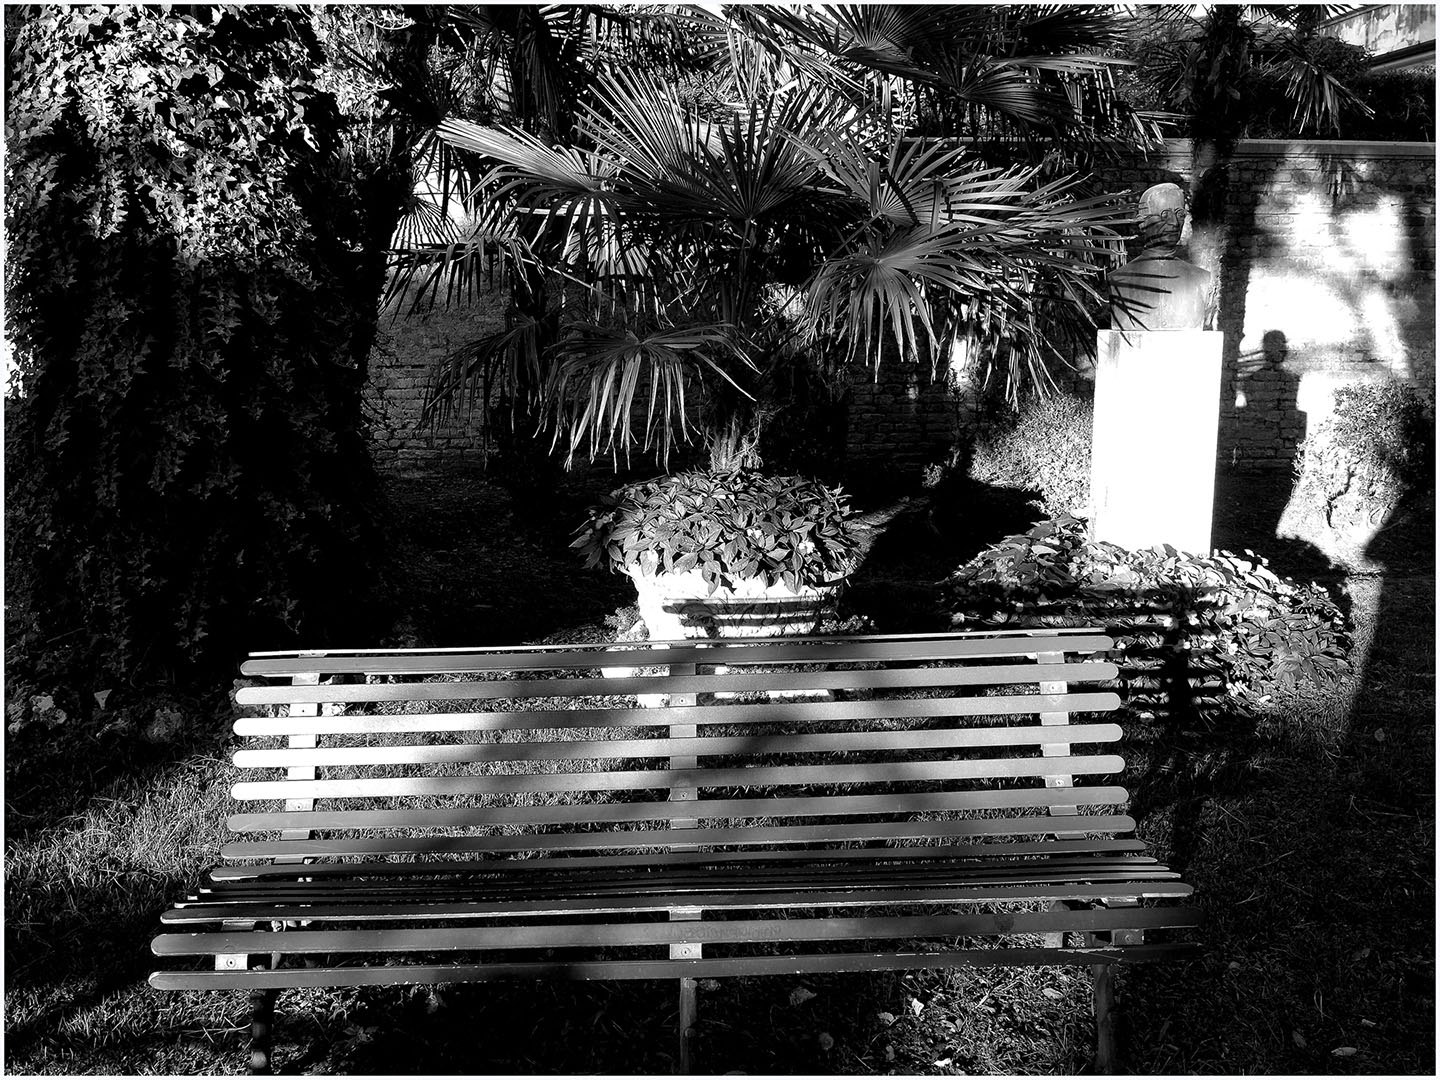 Wish_you_were_here_in_Black_and_White_087_I15.23.78